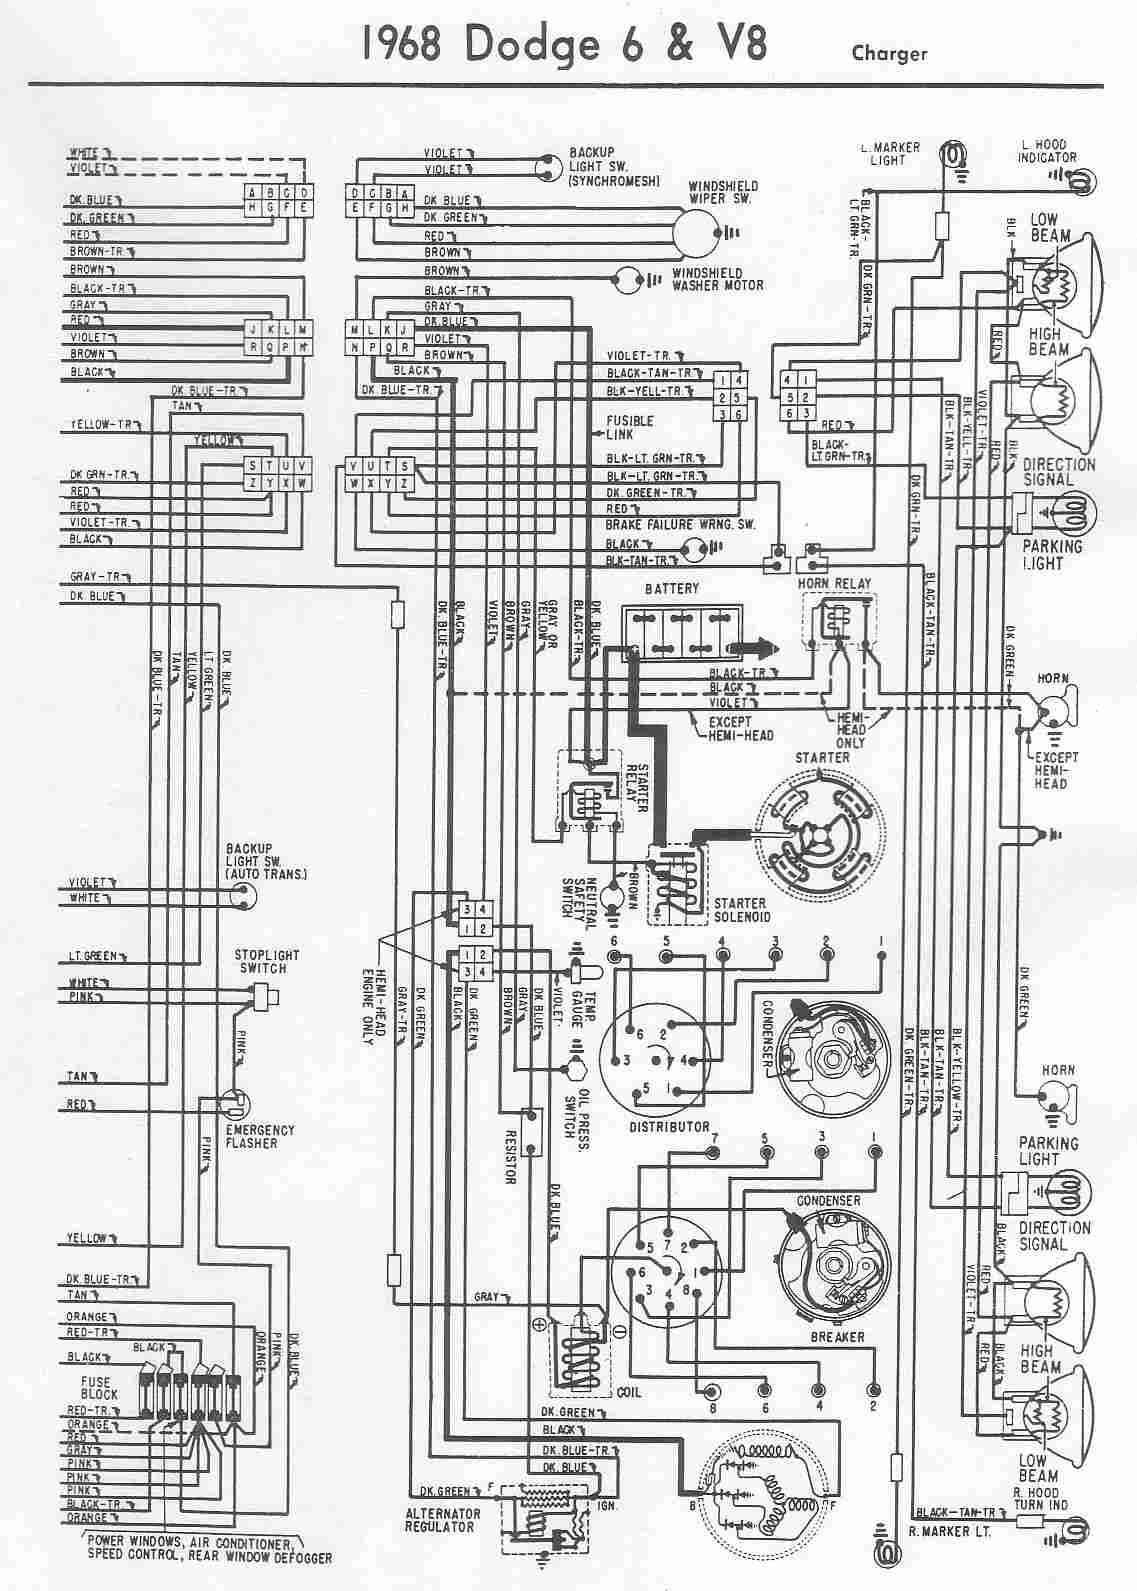 Dodge Car Manuals Wiring Diagrams Pdf Fault Codes Fuse Box Stratus 2006 Download